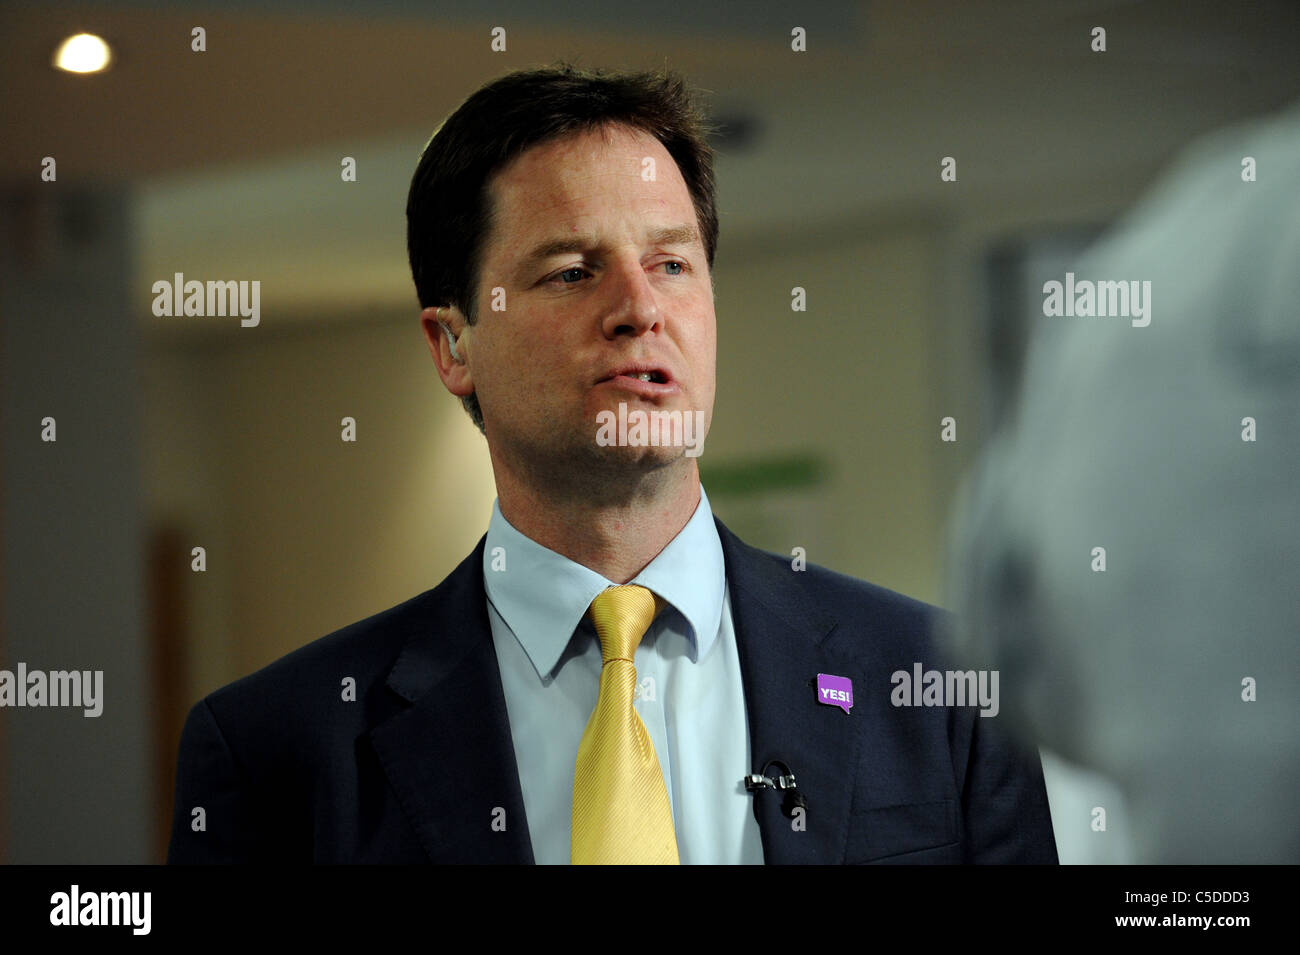 Deputy Prime Minister Nick Clegg bites his lip during a visit to the Newhaven Enterprise Centre - Stock Image